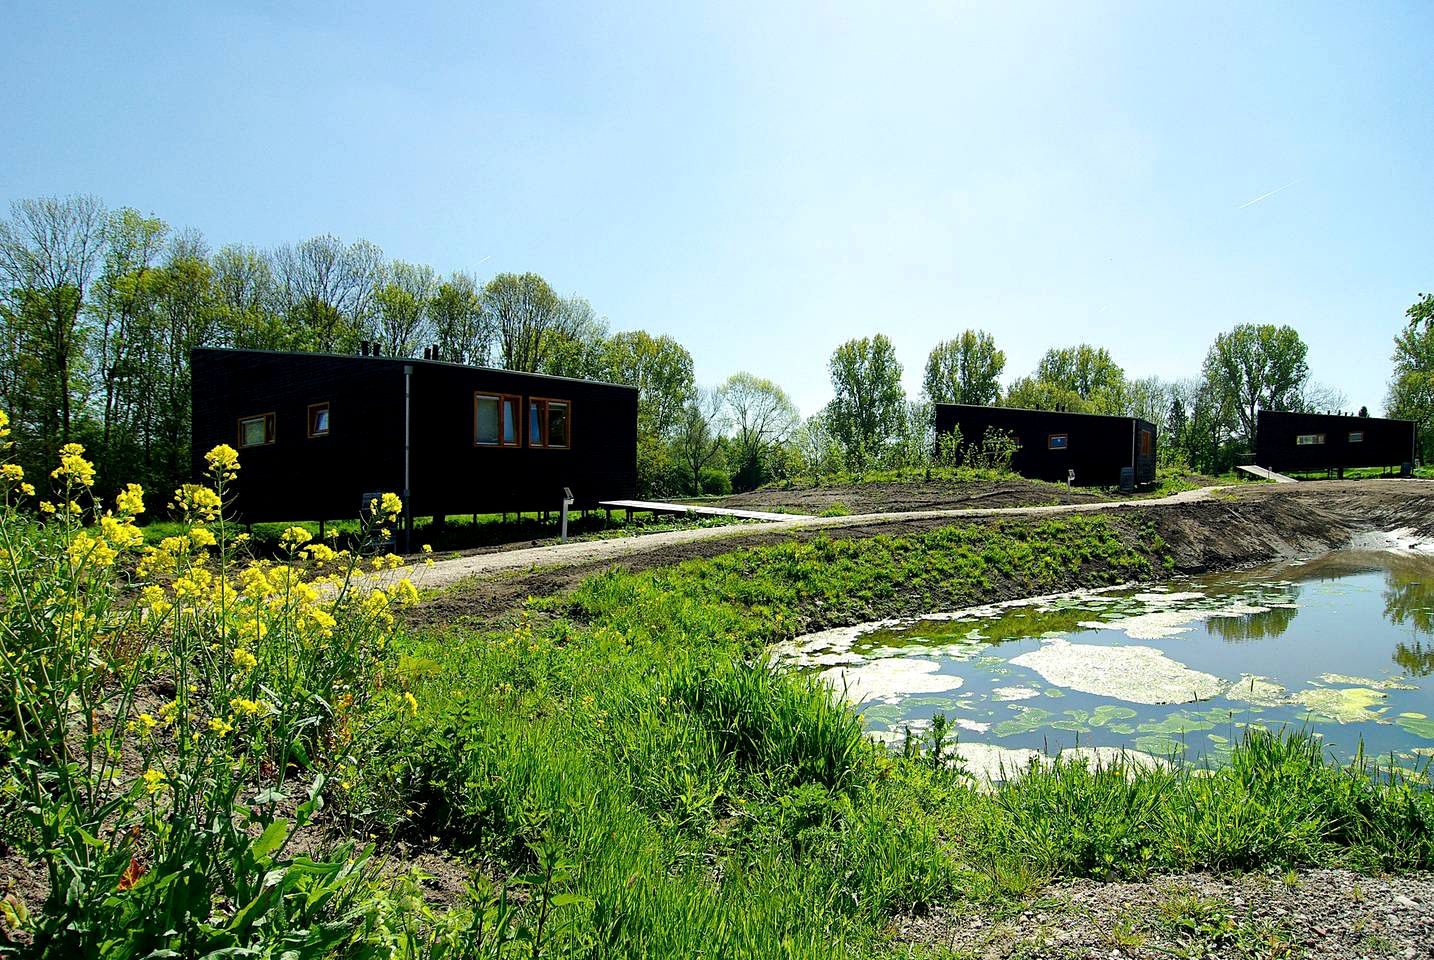 Cabins (Amsterdam, North Holland, Netherlands)